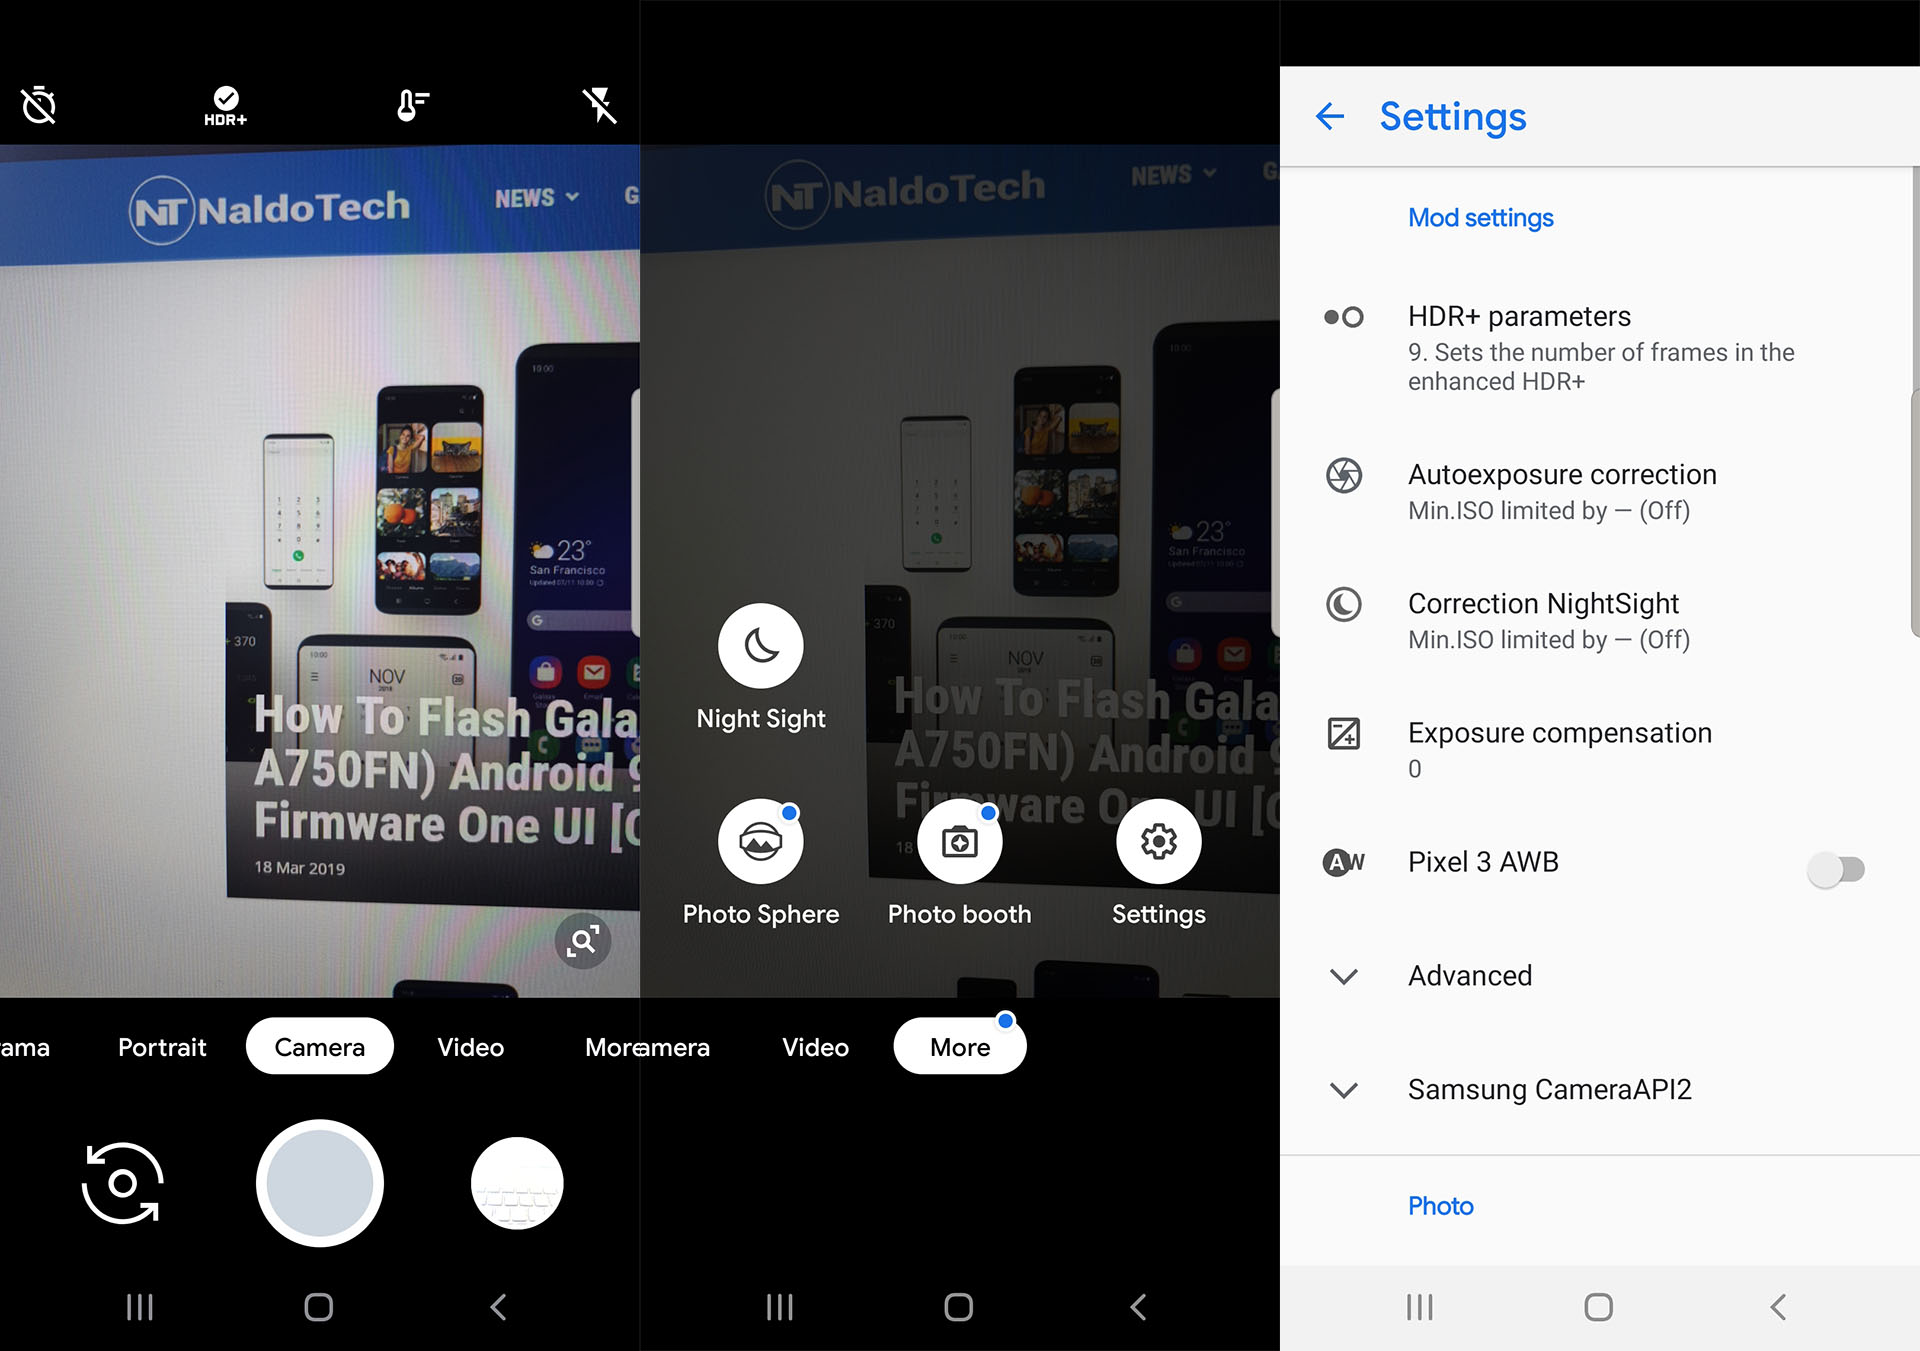 Install Google Camera APK with Night Sight on Galaxy S10